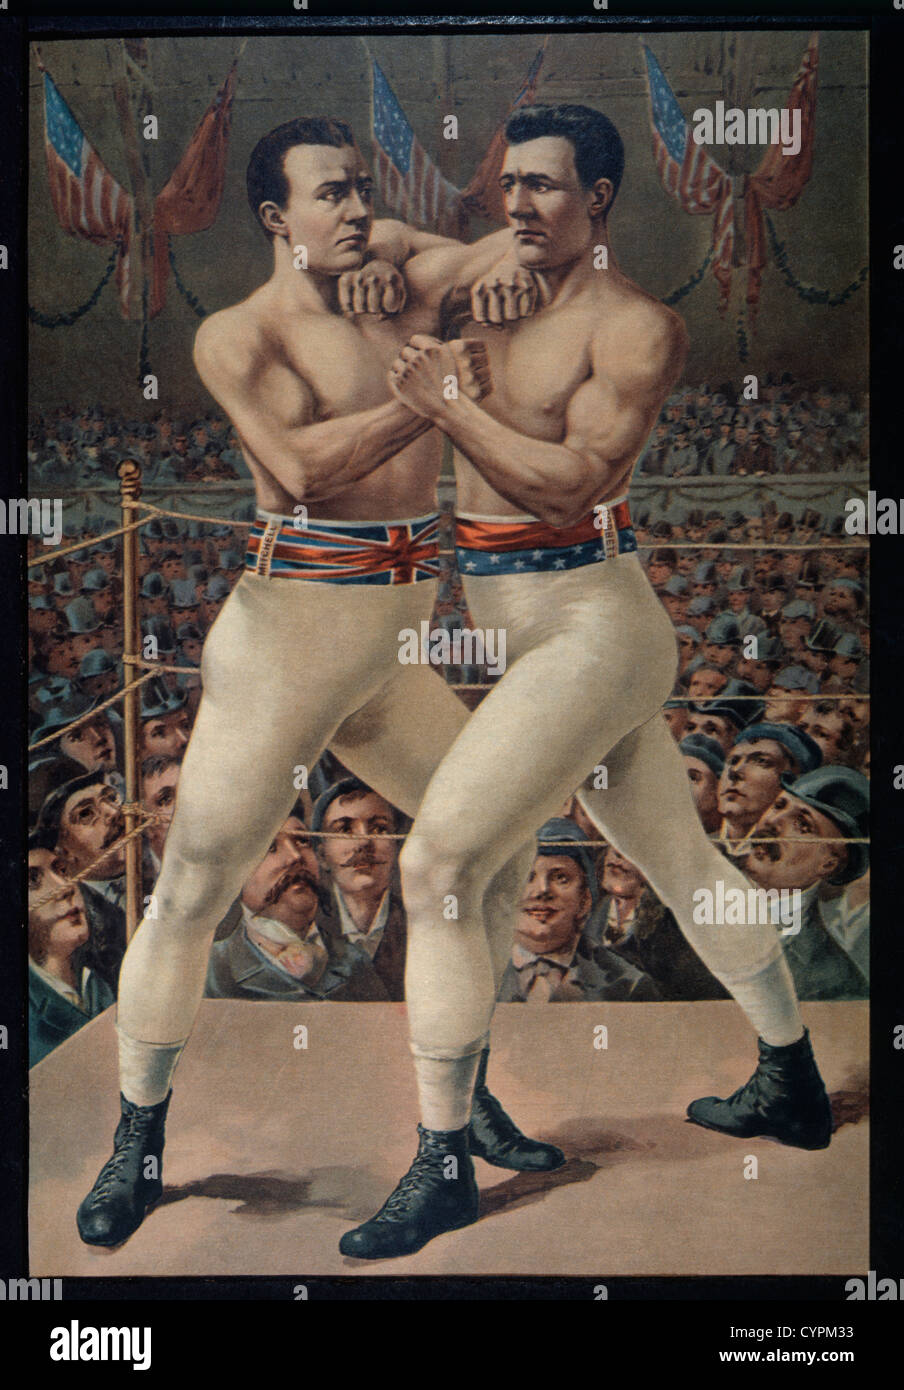 Charlie Mitchell vs. James Corbett Boxkampf, Jacksonville, Florida, USA, Lithographie, 1893 Stockbild